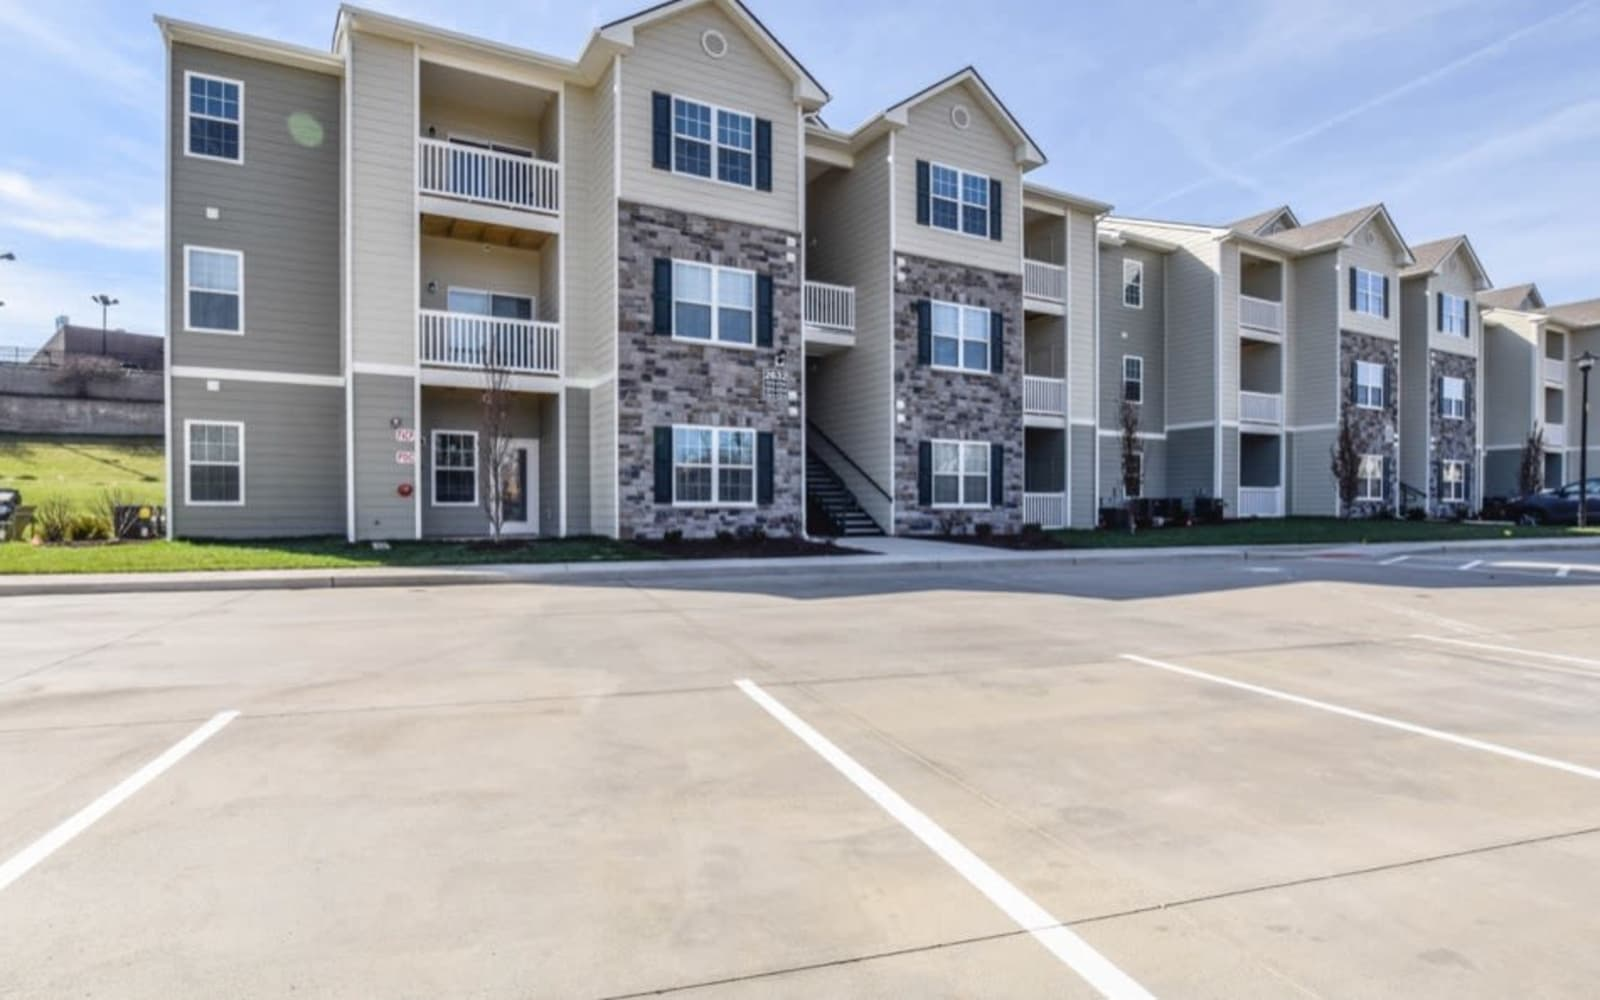 Private patio or balcony at Aventura at Towne Centre in Ellisville, Missouri.